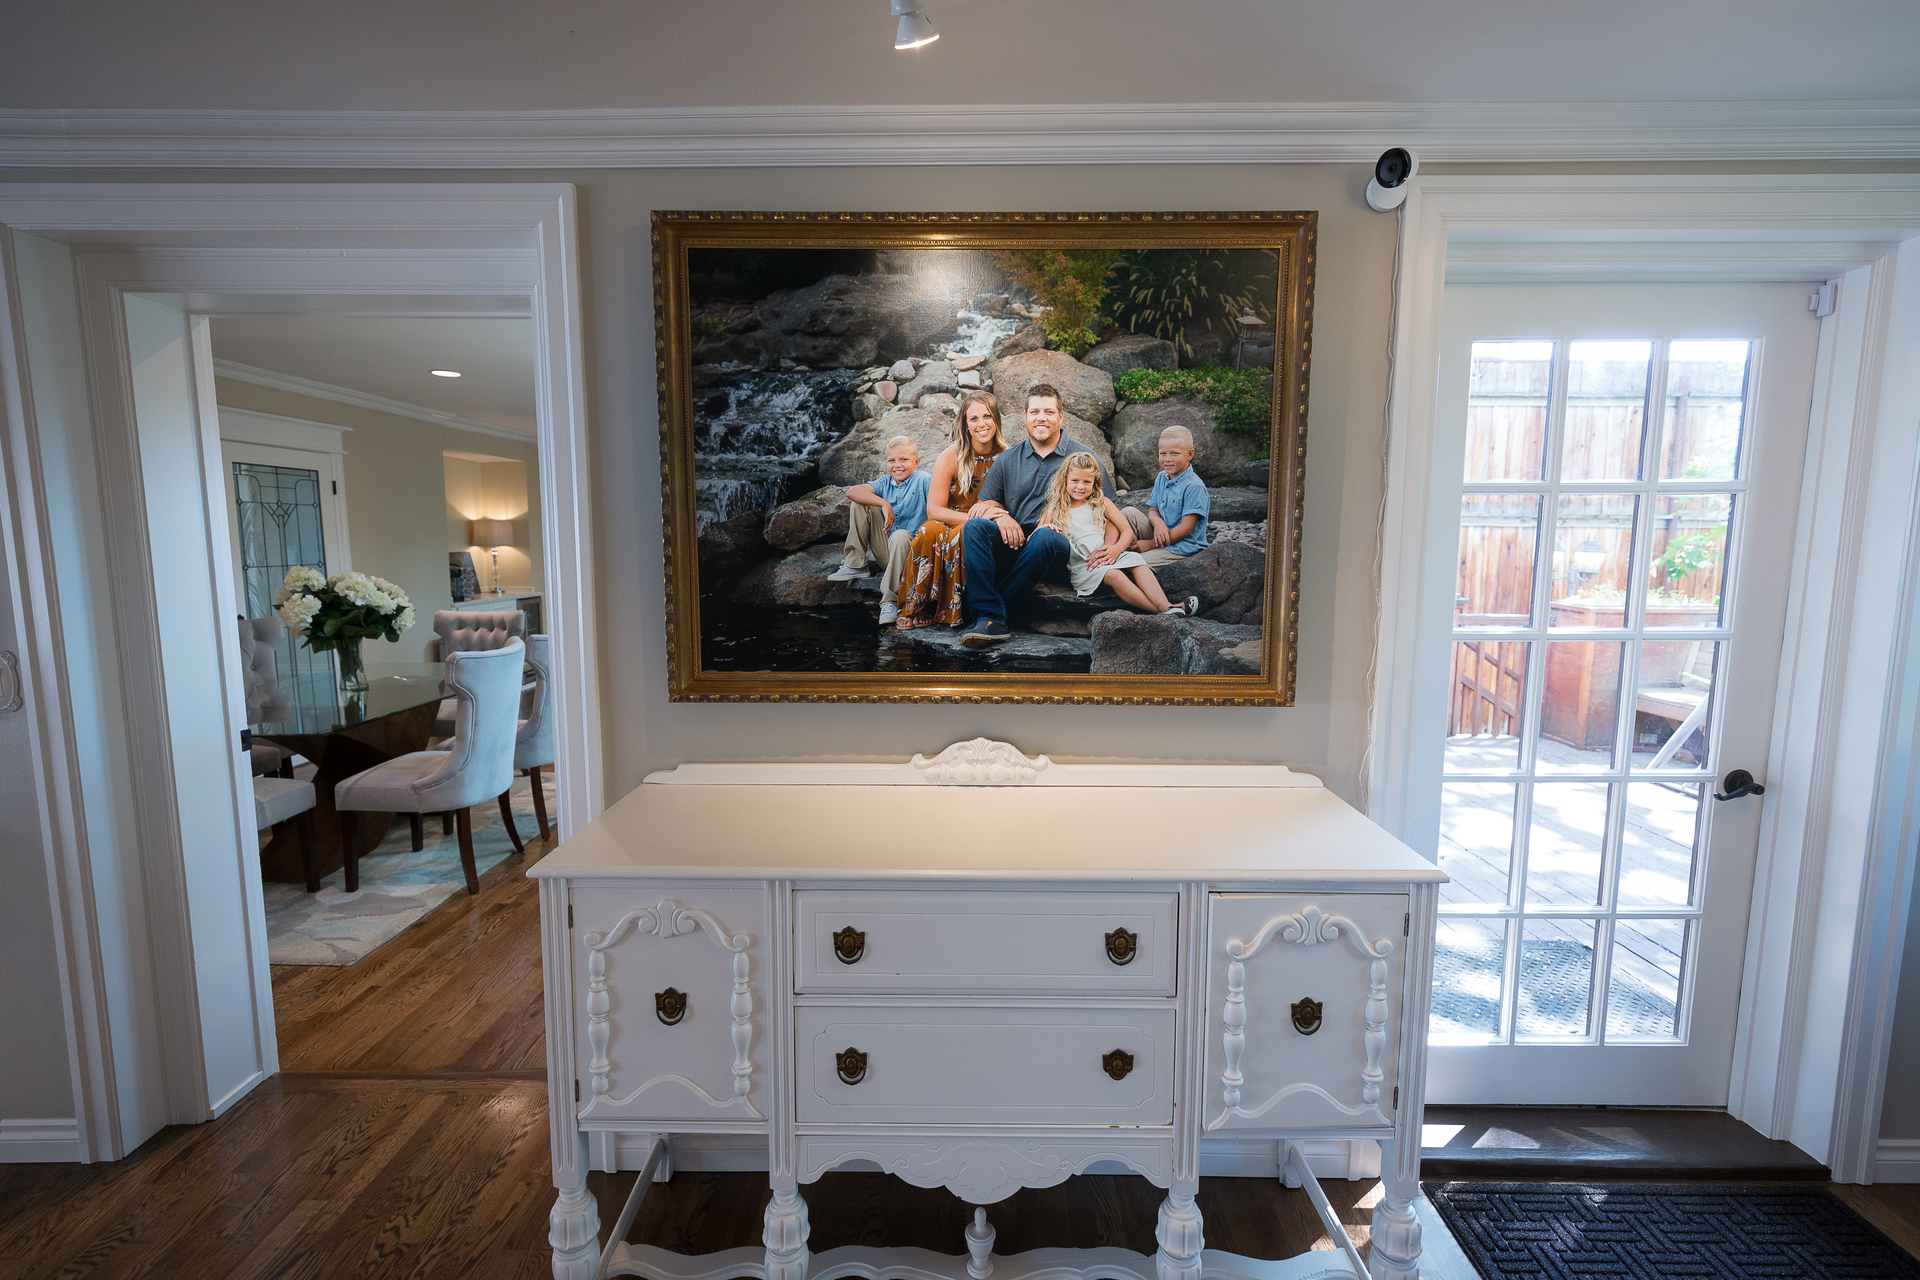 framed picture of smiling family in foyer